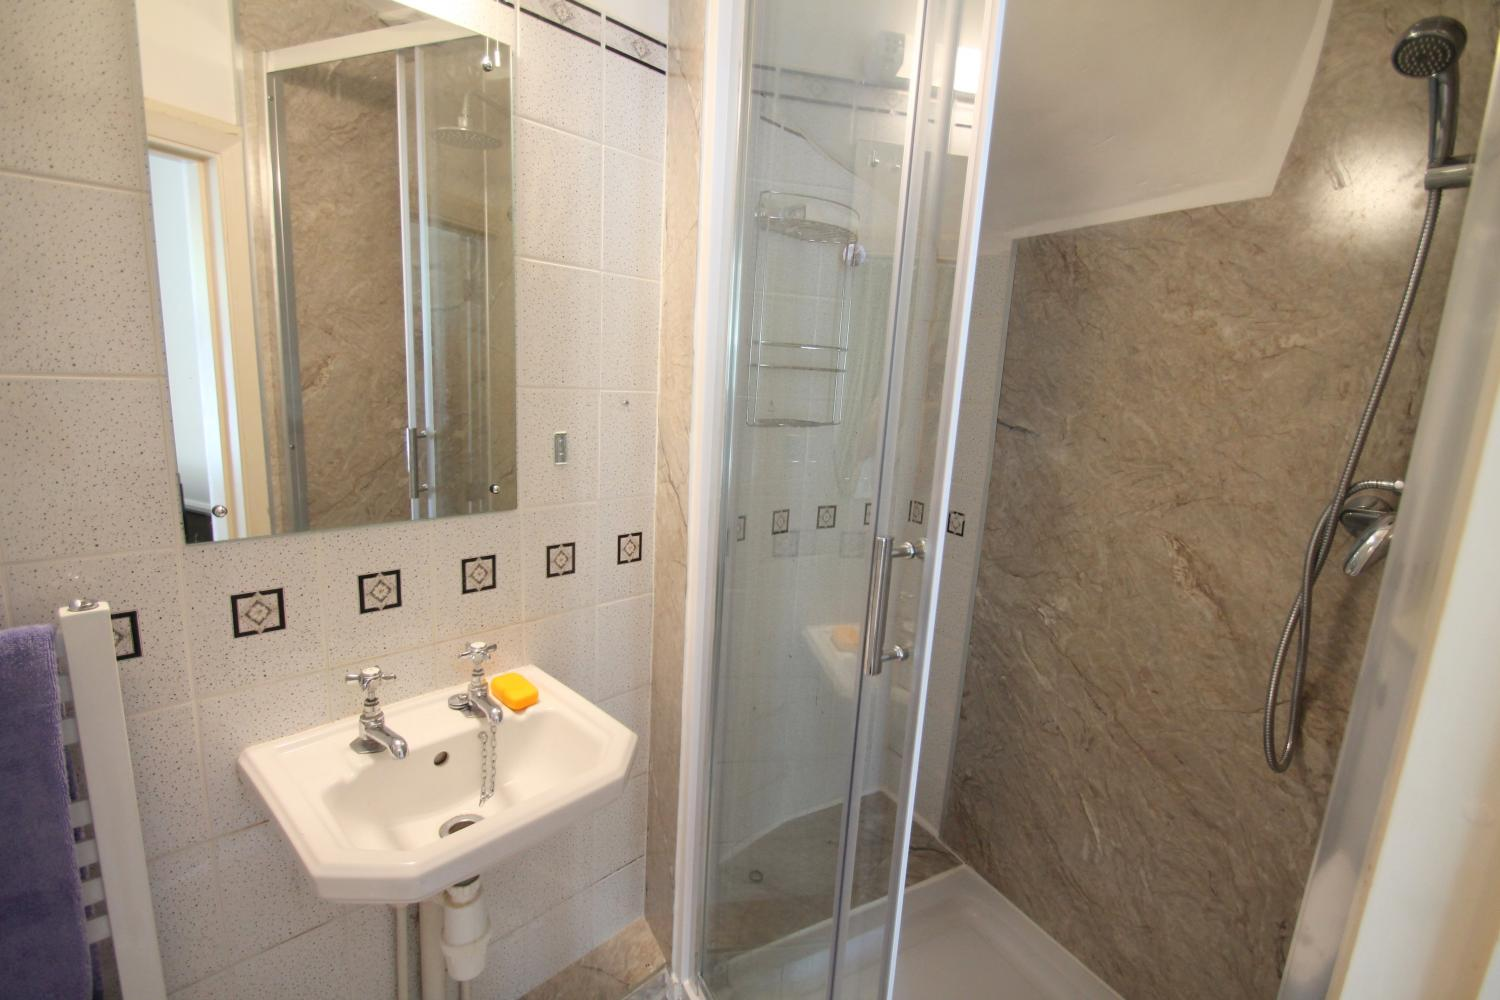 En suite shower area.